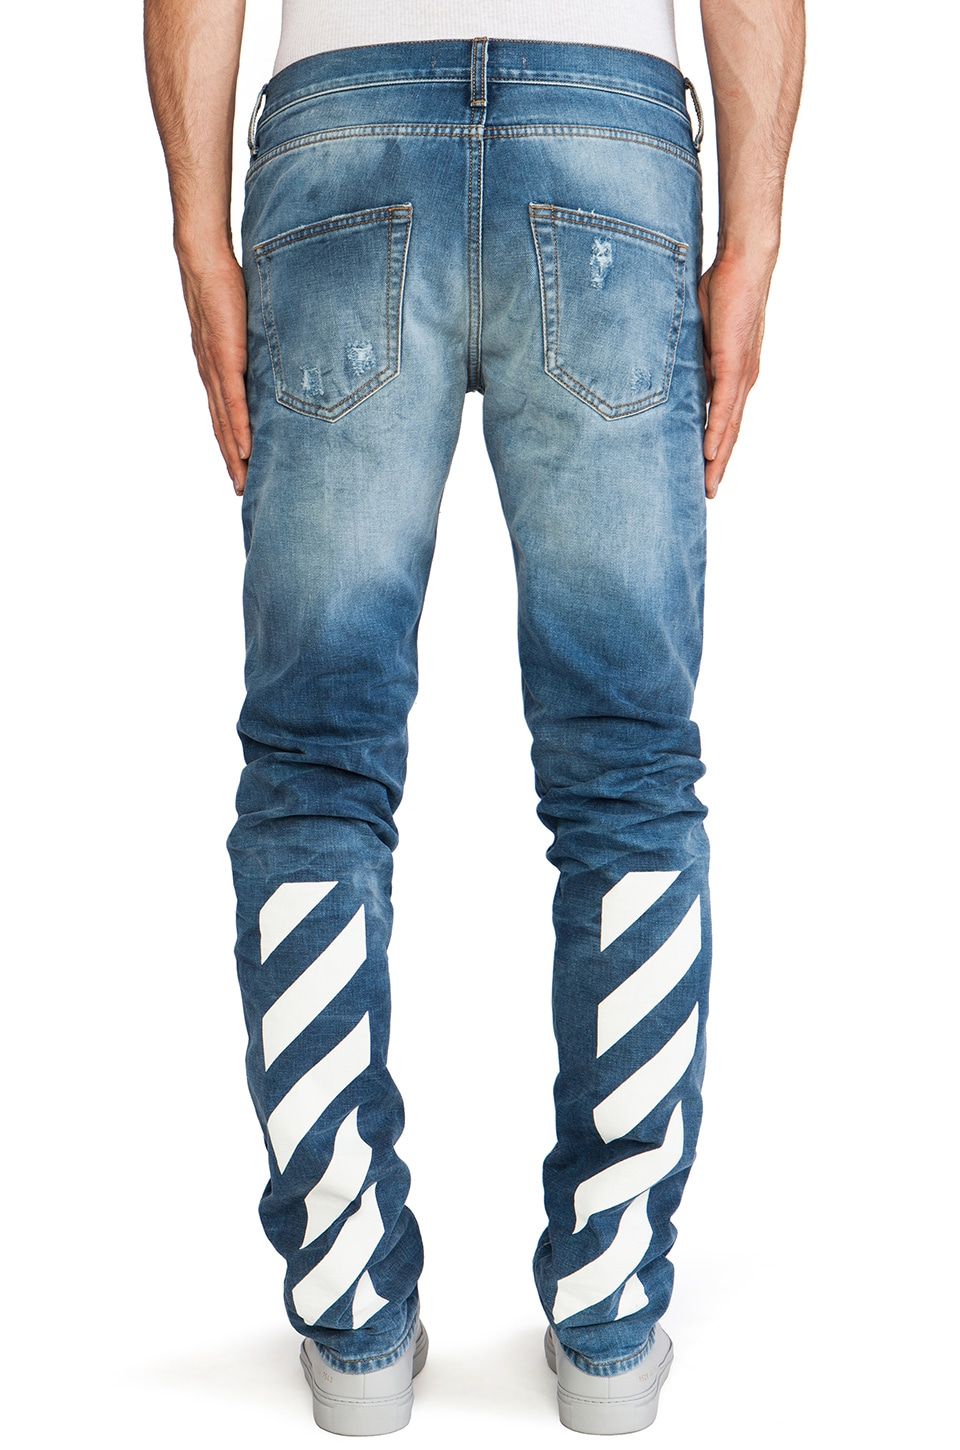 OFF-WHITE Jean with White Text in Vintage Wash | REVOLVE